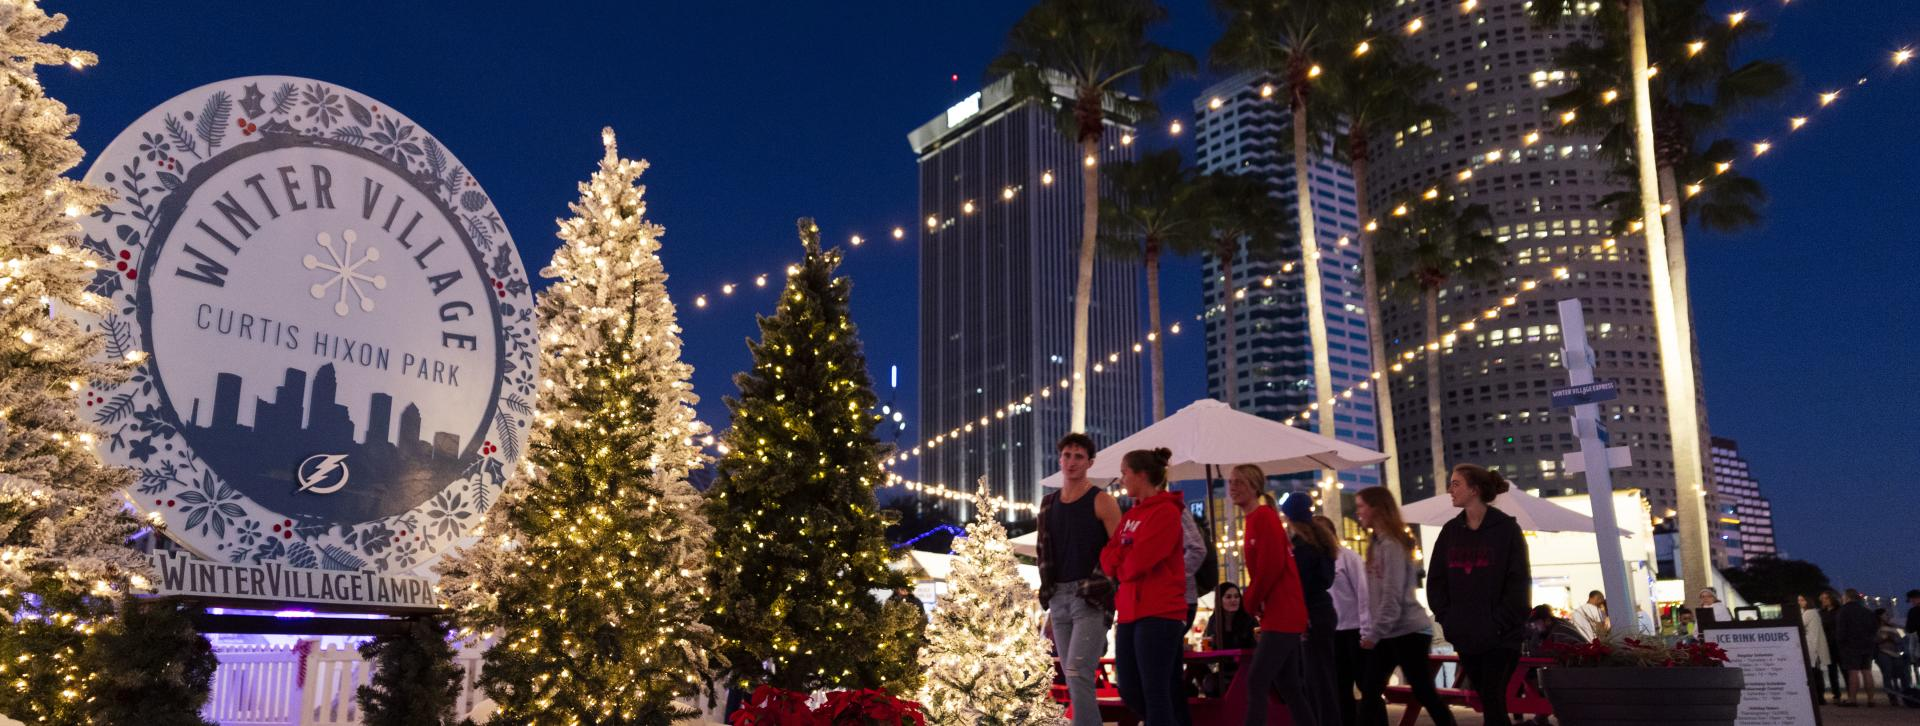 Christmas Events In Tampa 2020 Holiday Season and New Year's Events